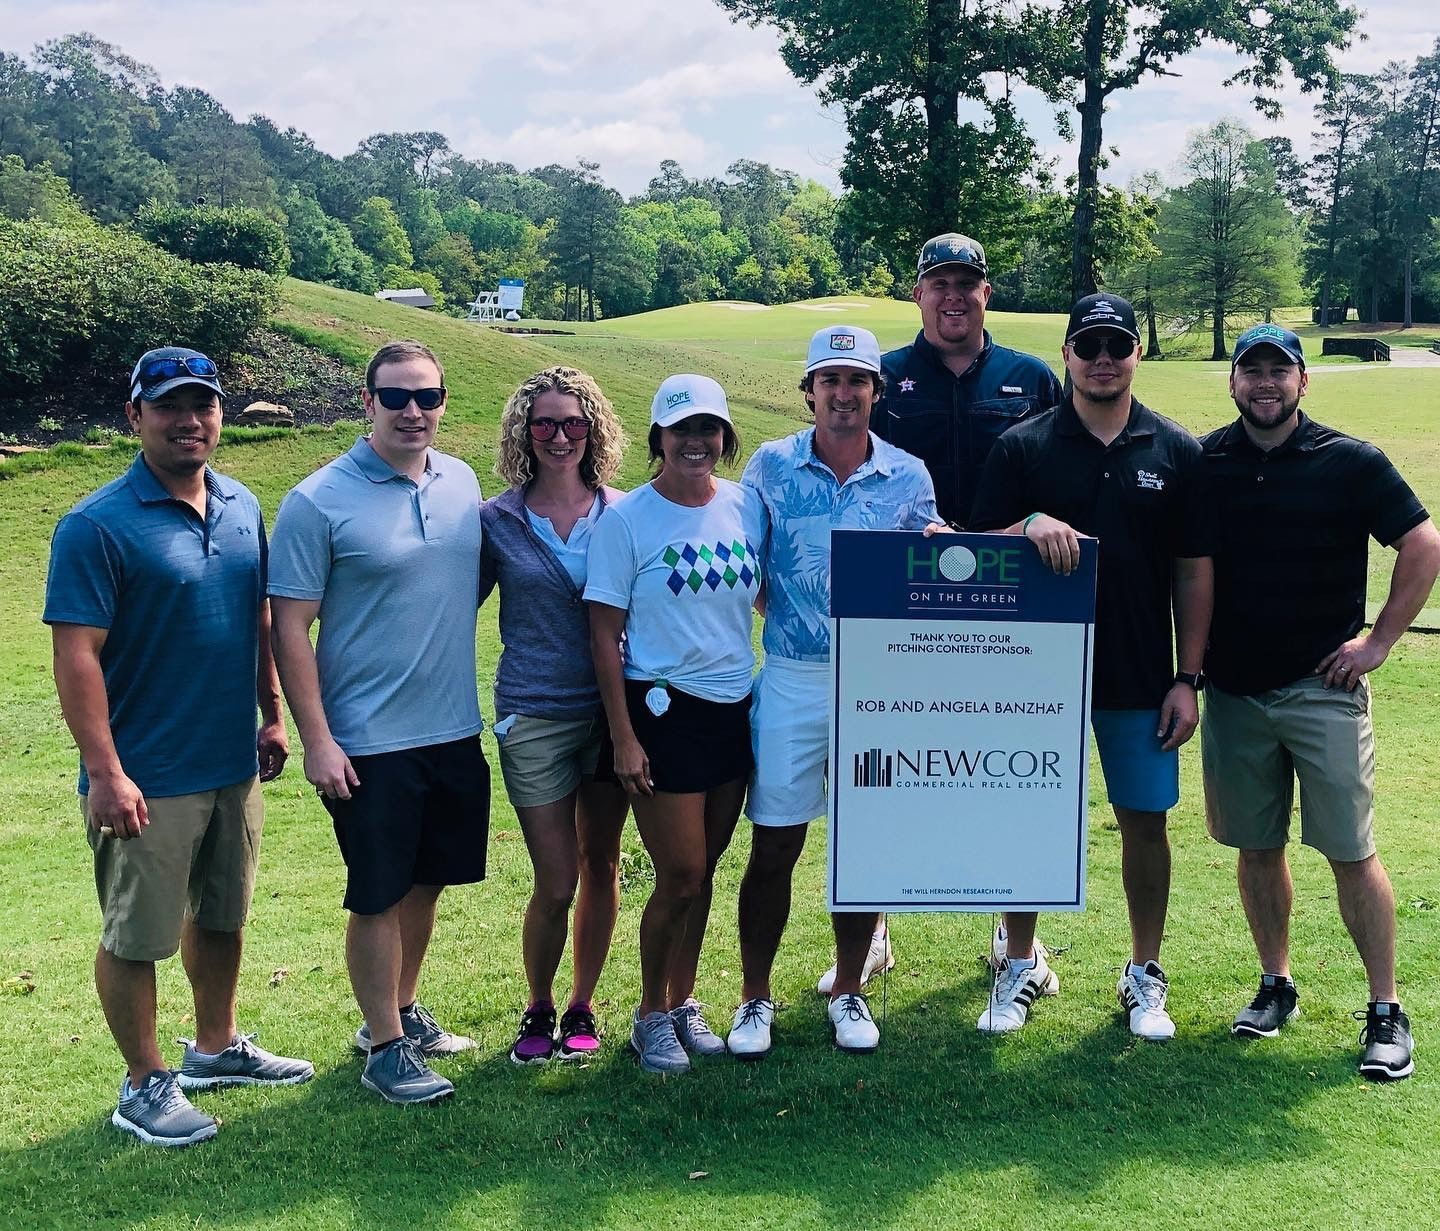 Hope on The Green 4.8.19 Newcor Team Sponsor